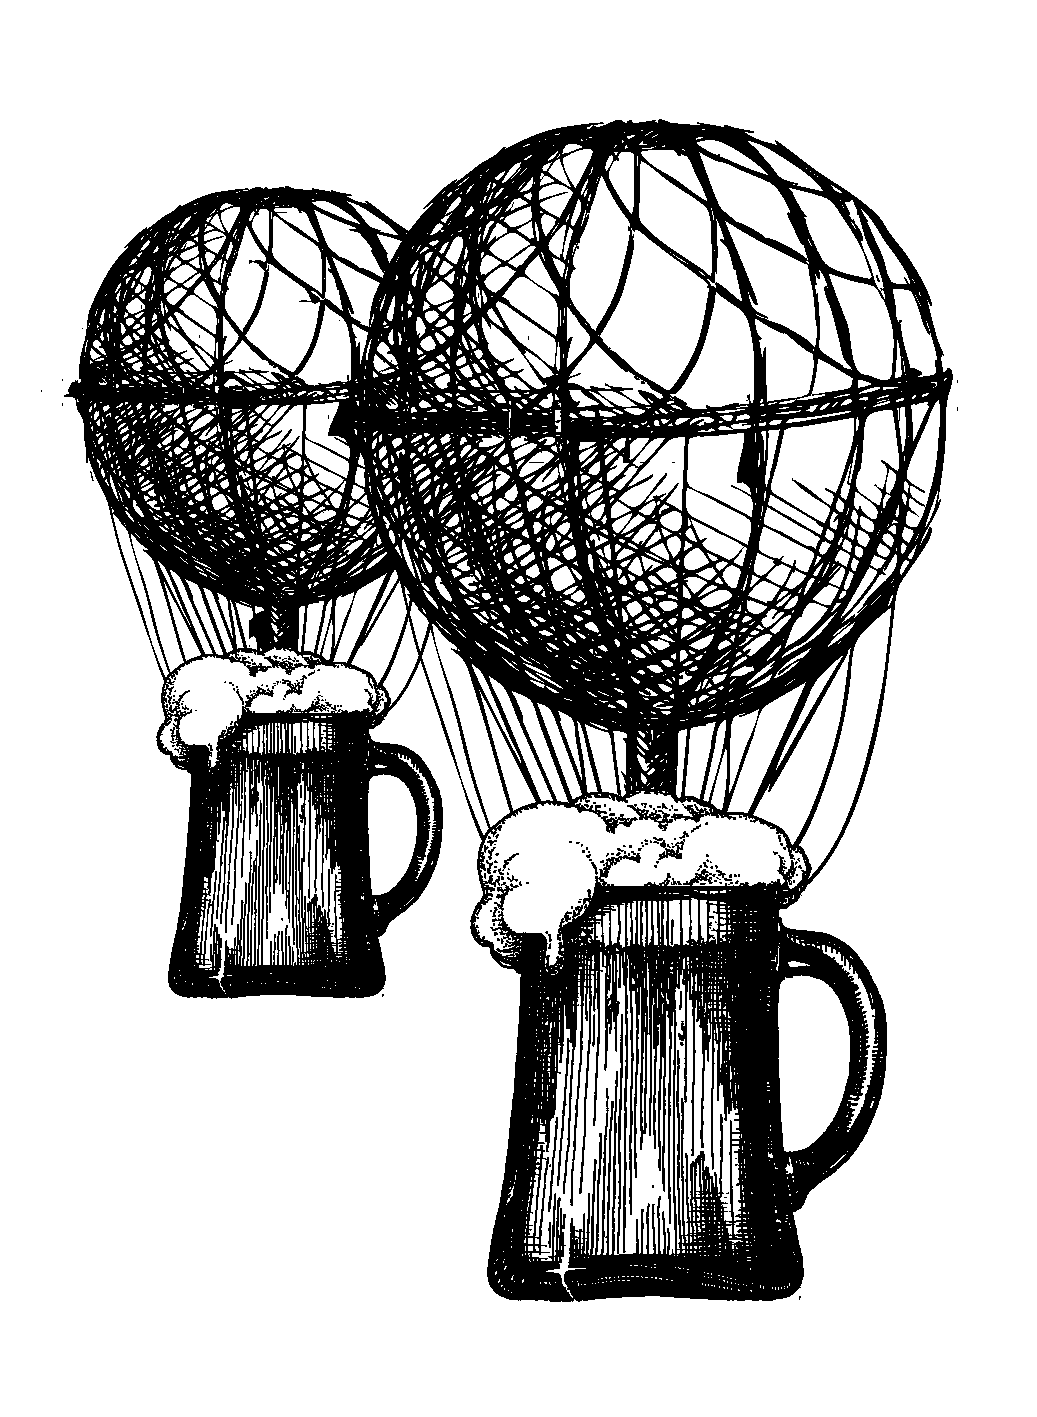 Beer Baloons